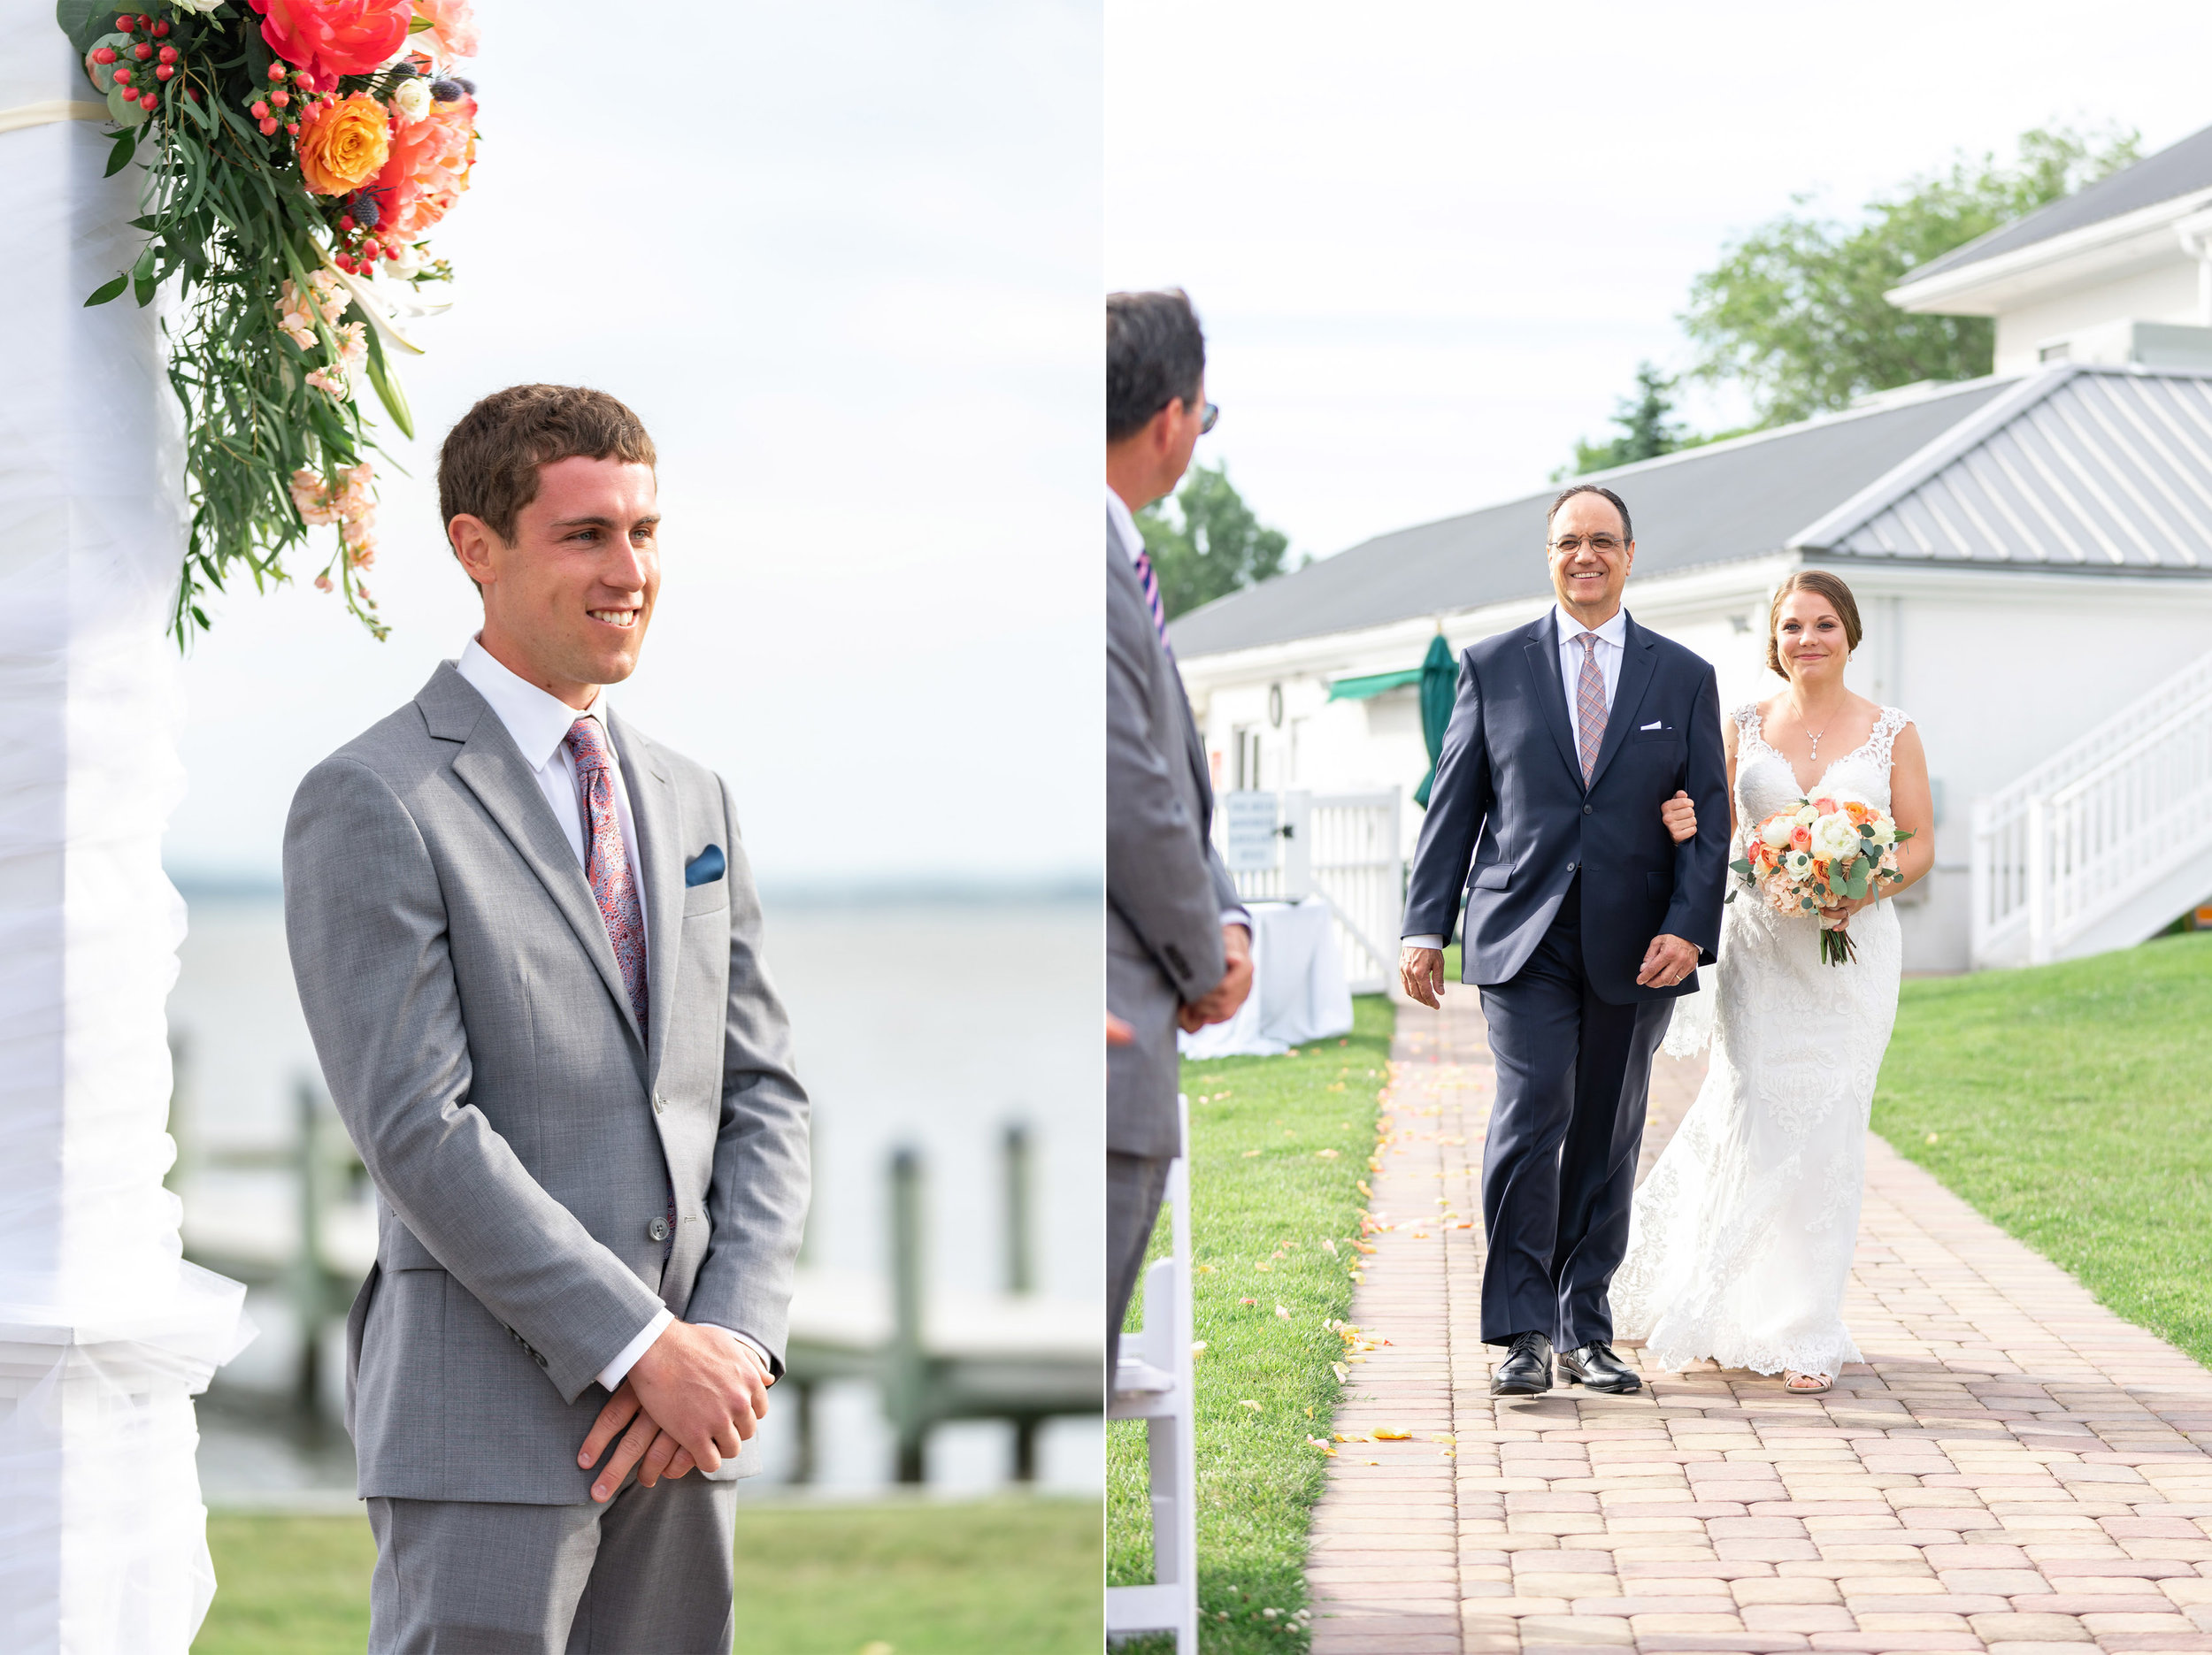 Groom watching bride come down the aisle at Rehoboth Beach Country Club